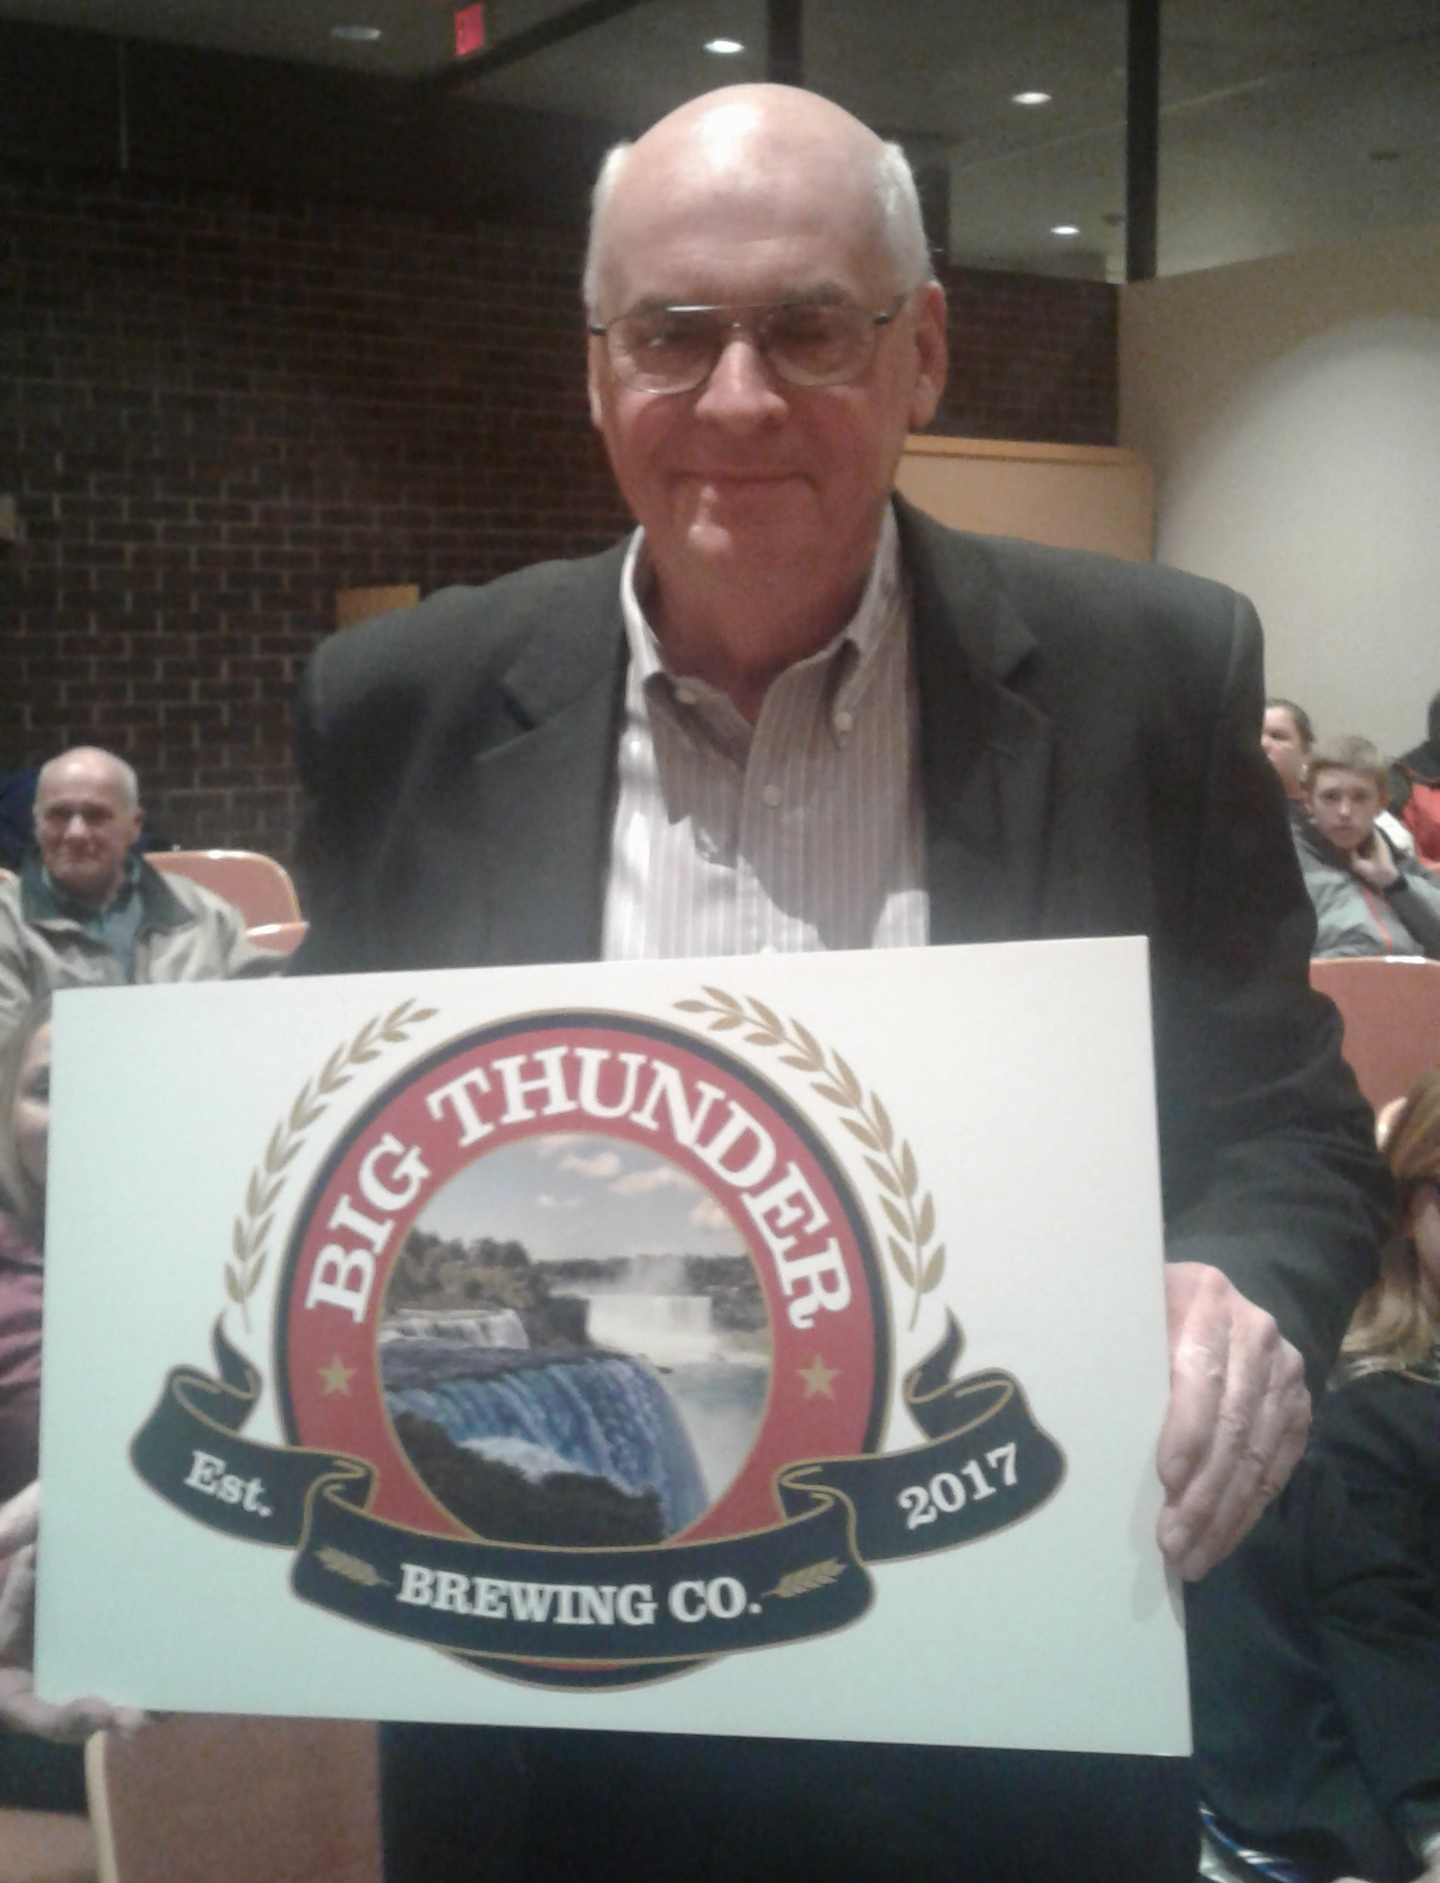 John Robinson, principal in Big Thunder Brewing Co., displays the company logo at Wheatfield Town Hall Jan. 23, 2017. (Thomas J. Prohaska / Buffalo News)